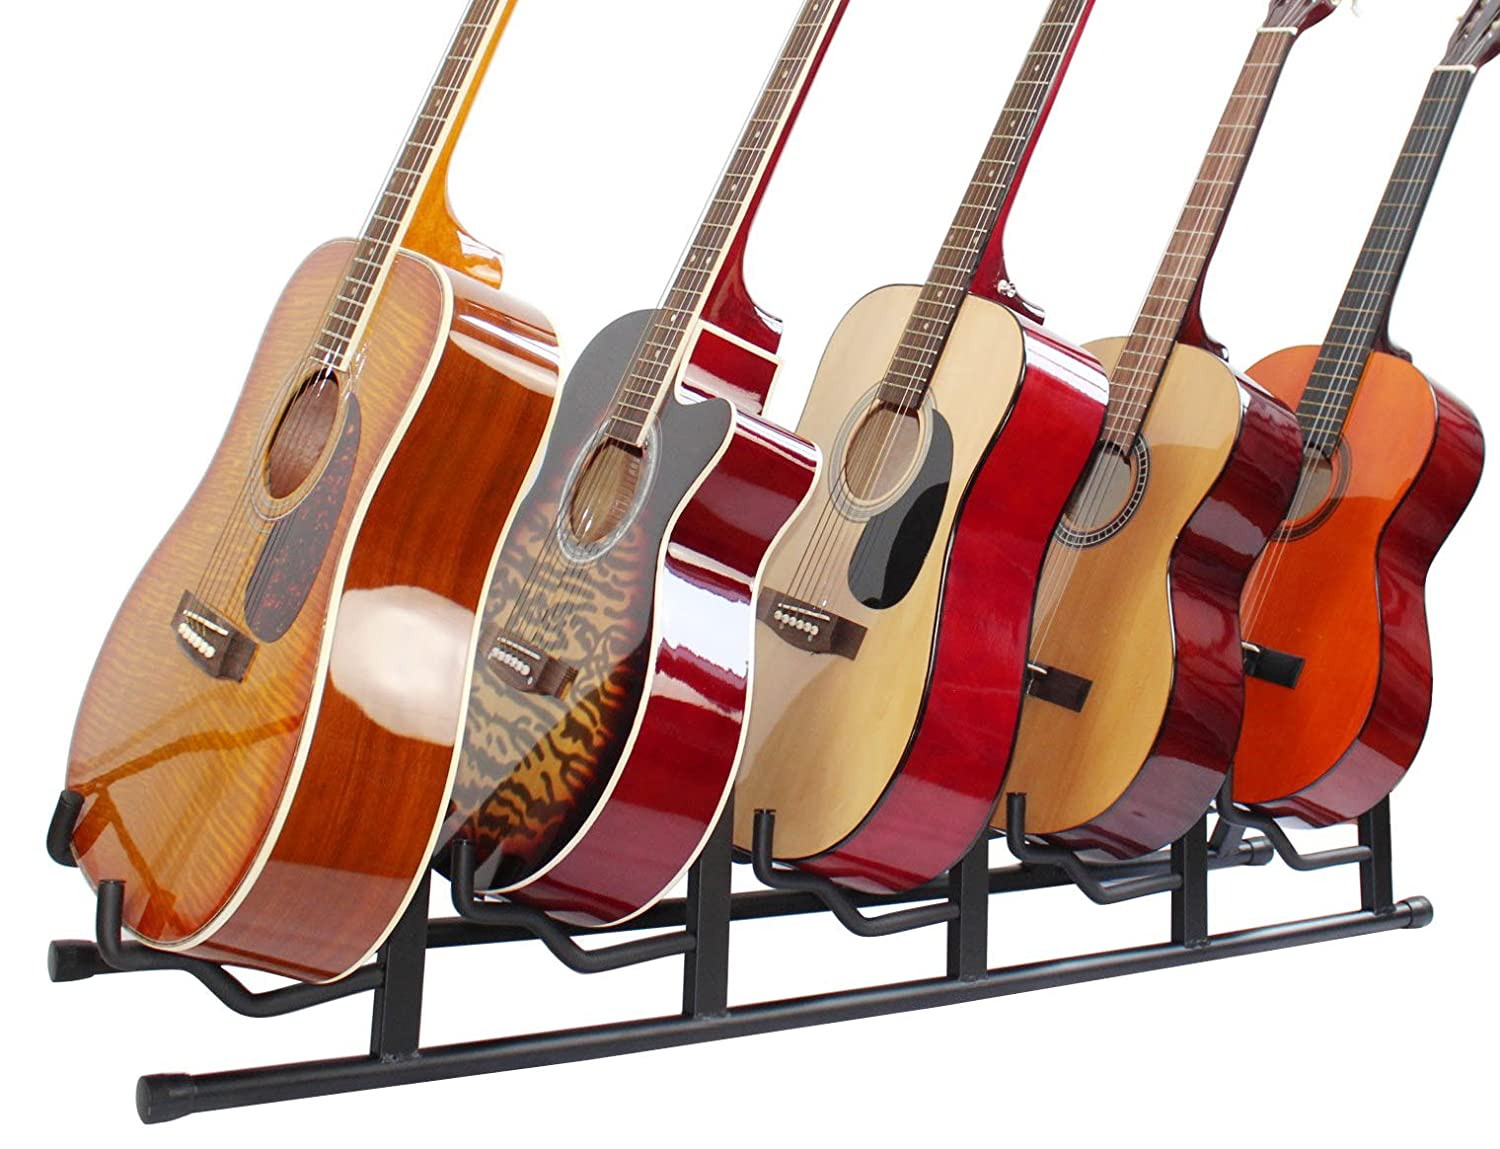 YMC Universal Folding Triple Guitar Stand with Secure Lock for Acoustic and Electric Guitar